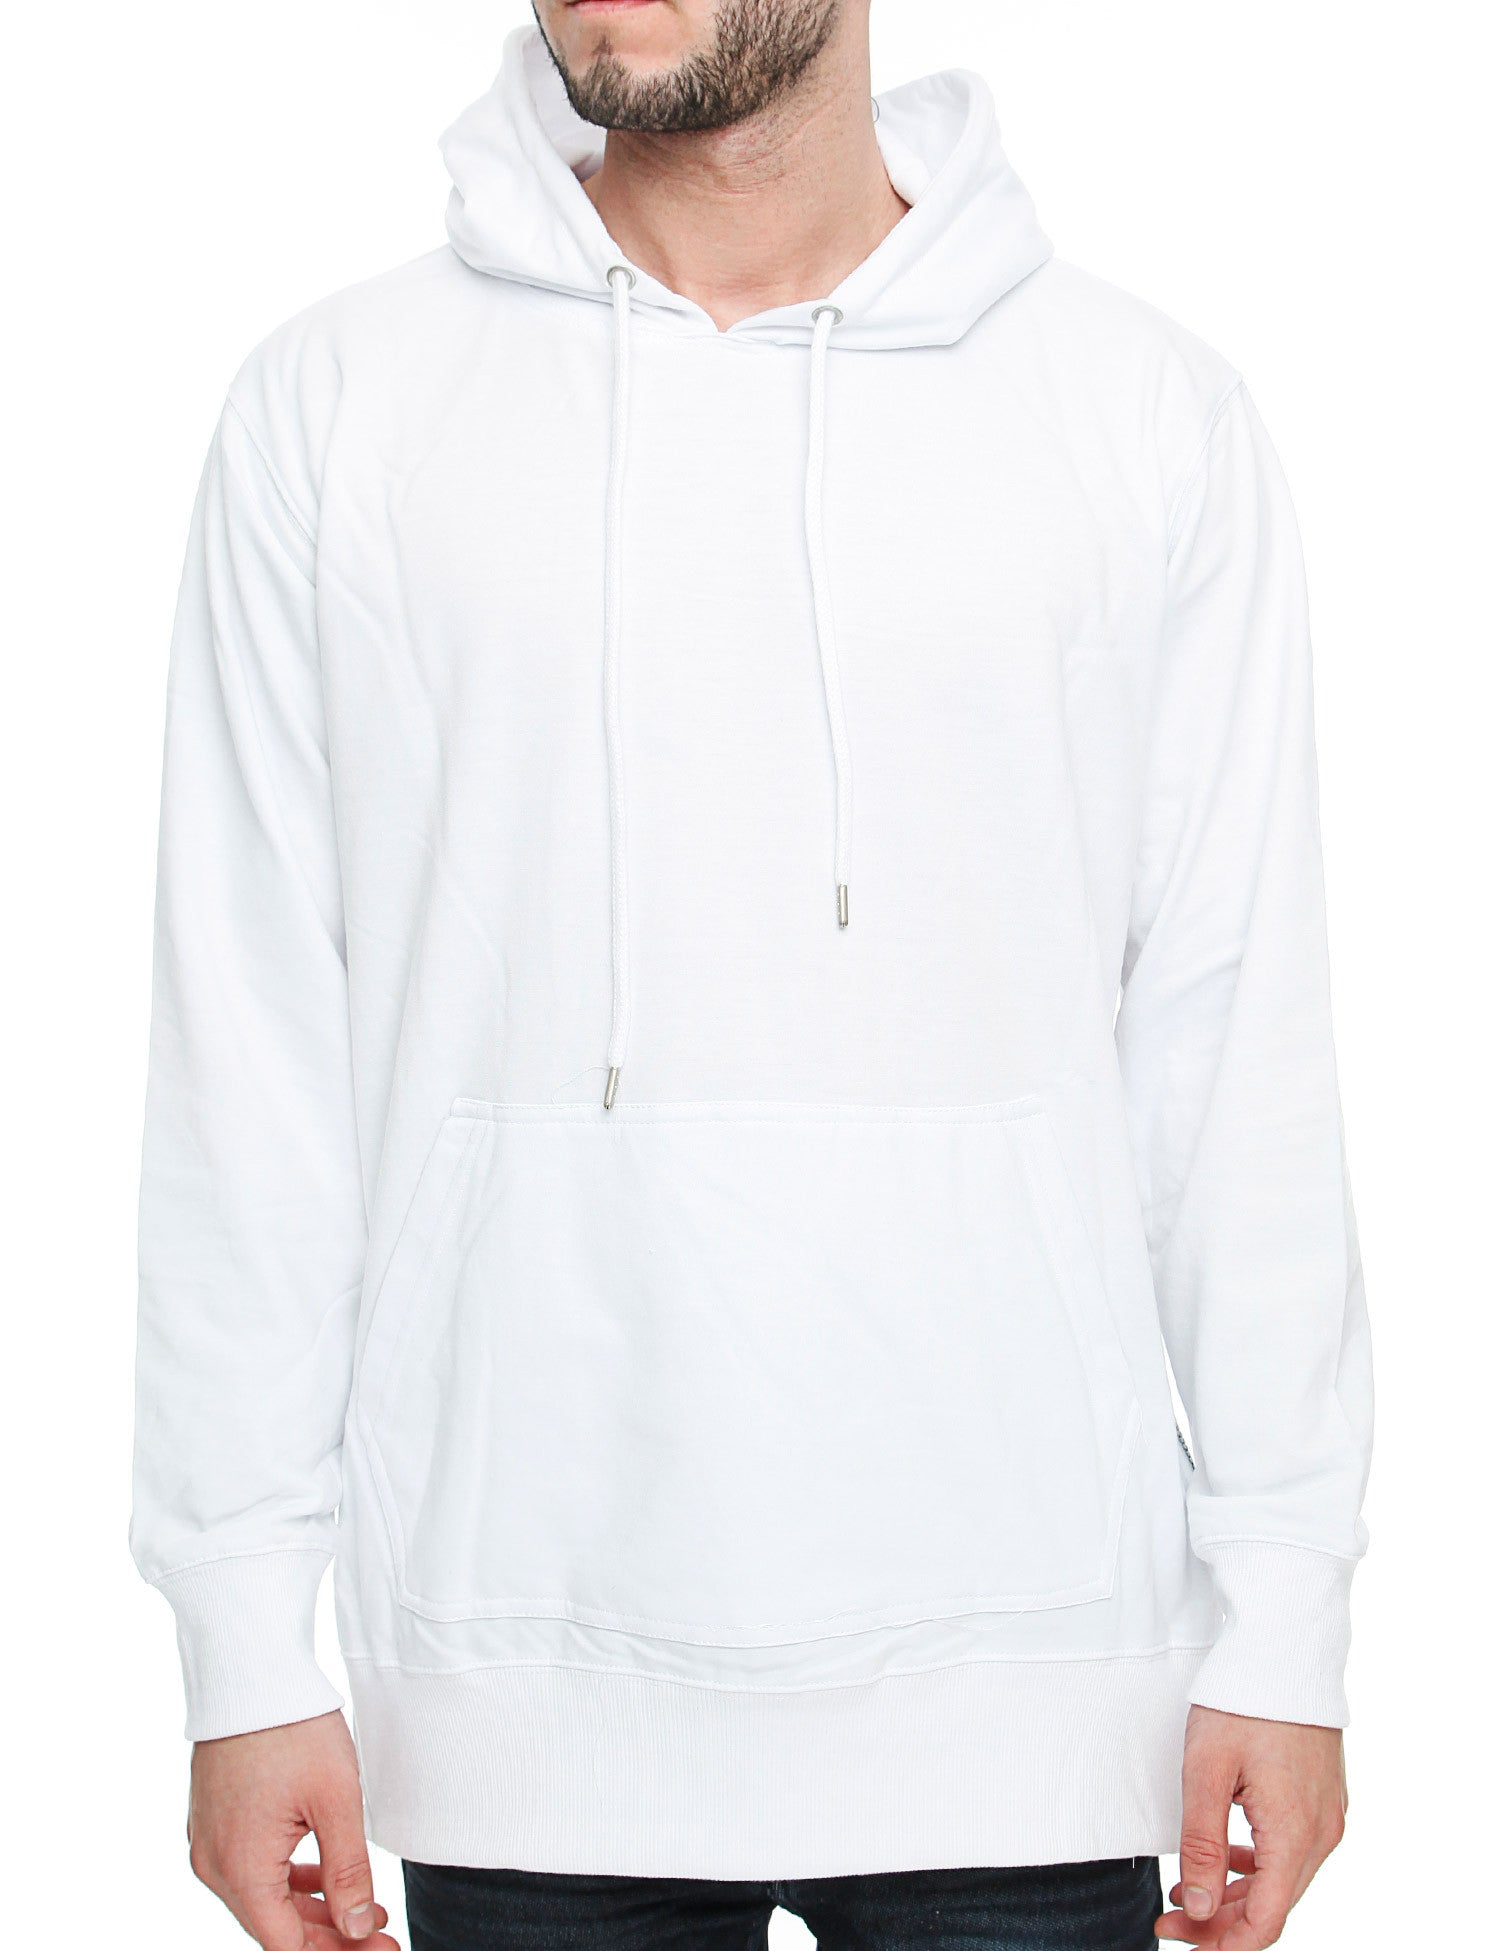 Royal Blue Hoody R4HD1014 White